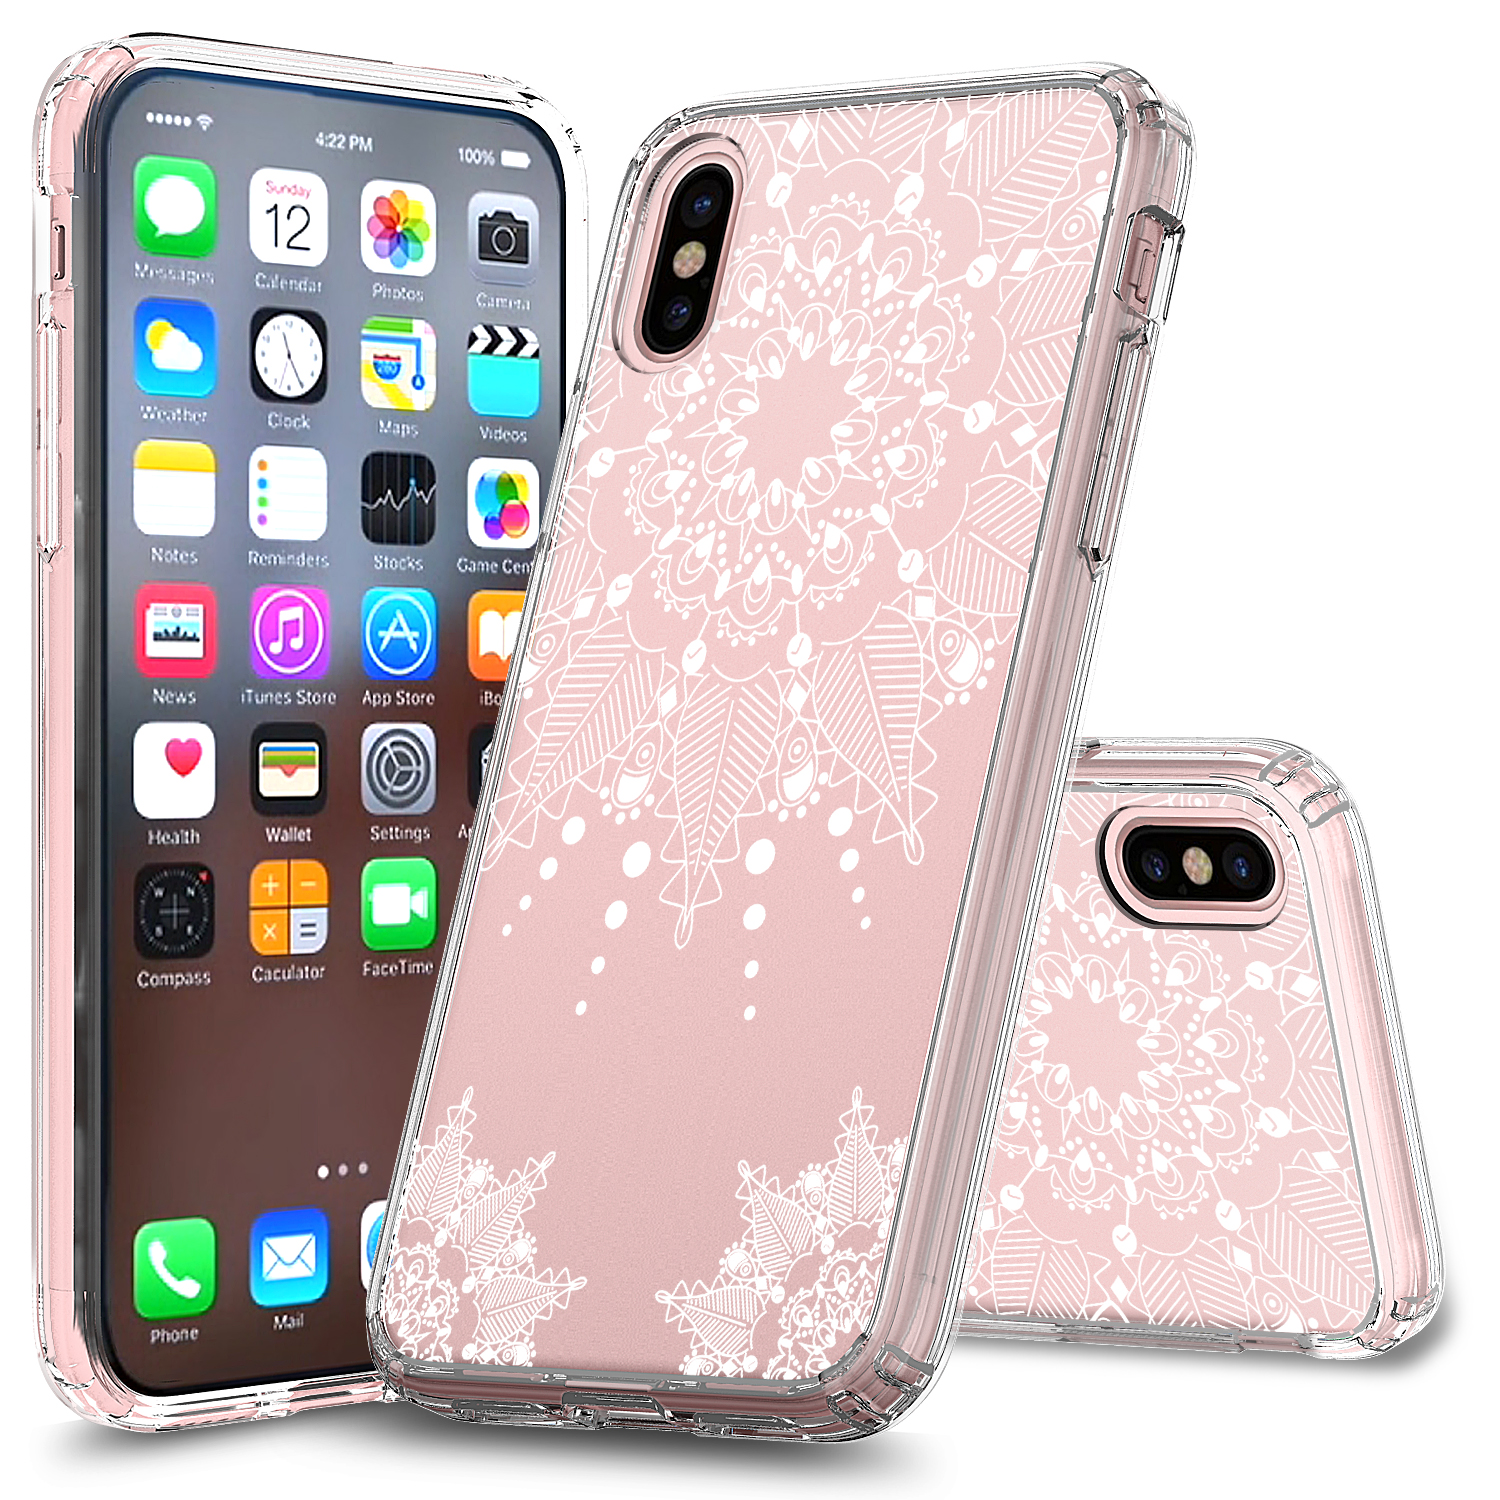 iPhone X Case (5.8'), APPLE IPhone X Case, Torryka Slim Clear anti-scratch Pattern Designed Slim Shockproof Hard PC+TPU Bumper Protective Armor Defender Cover for Apple iPhone X (Mandala Floral)